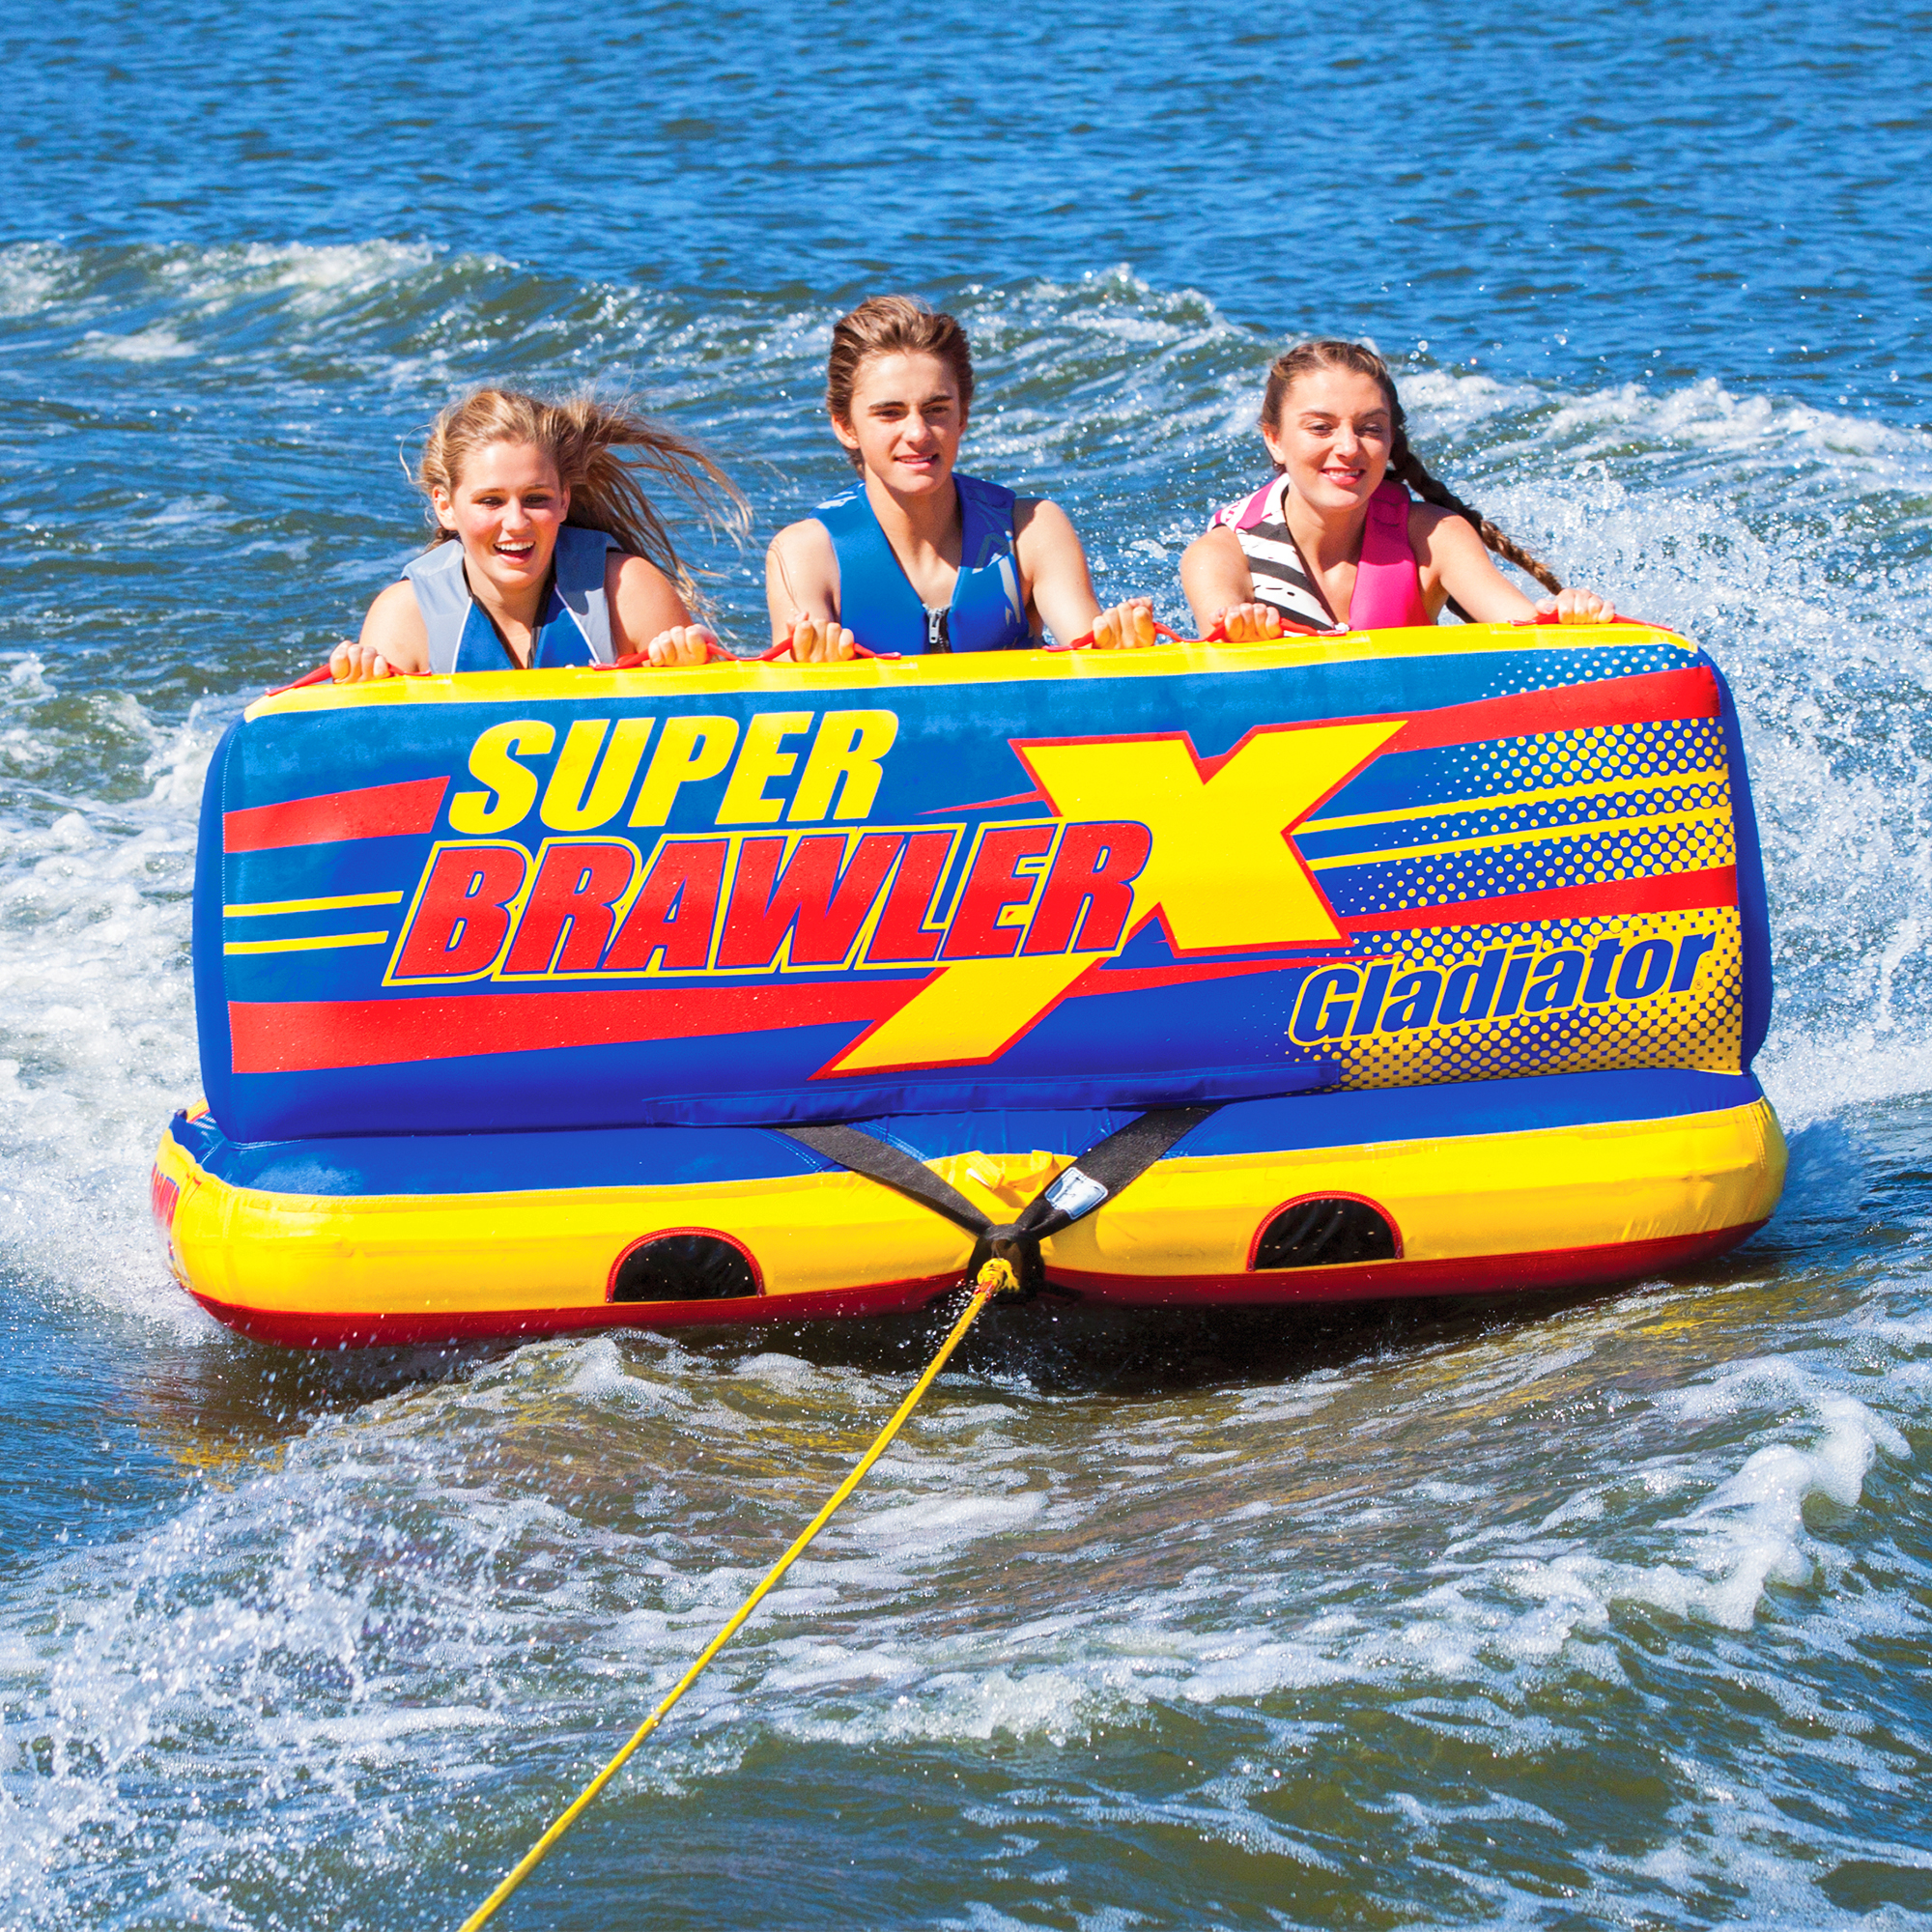 Gladiator Super Brawler X 3-Person Towable Tube Package